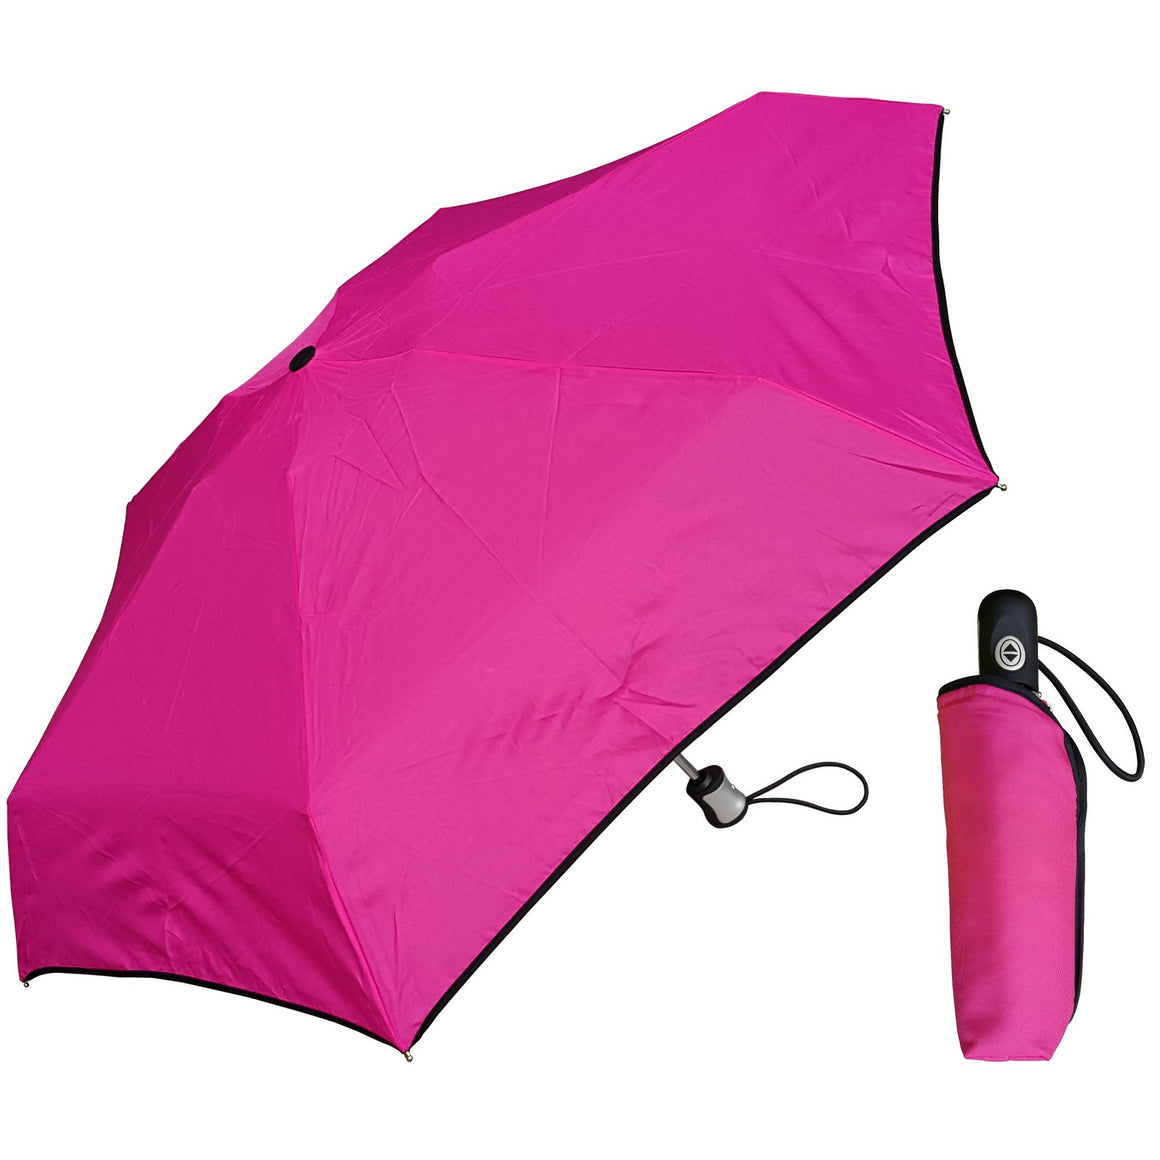 Wholesale Mini Auto Umbrella with Colorful Piping